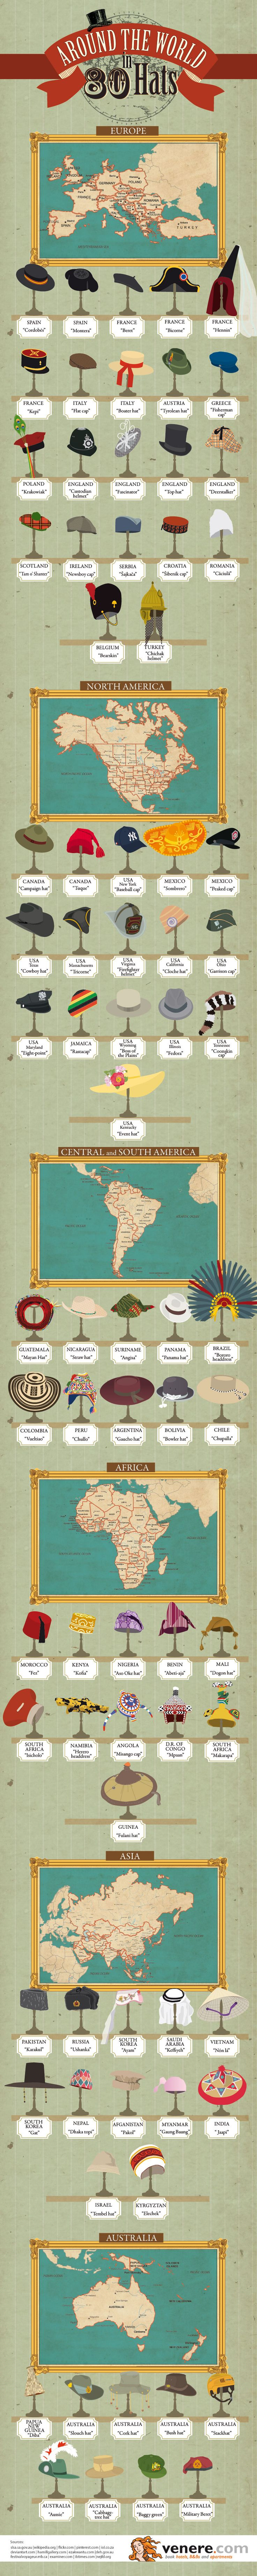 Around the world in 80 hats [infographic] | #travel #fashion via @matadornetwork